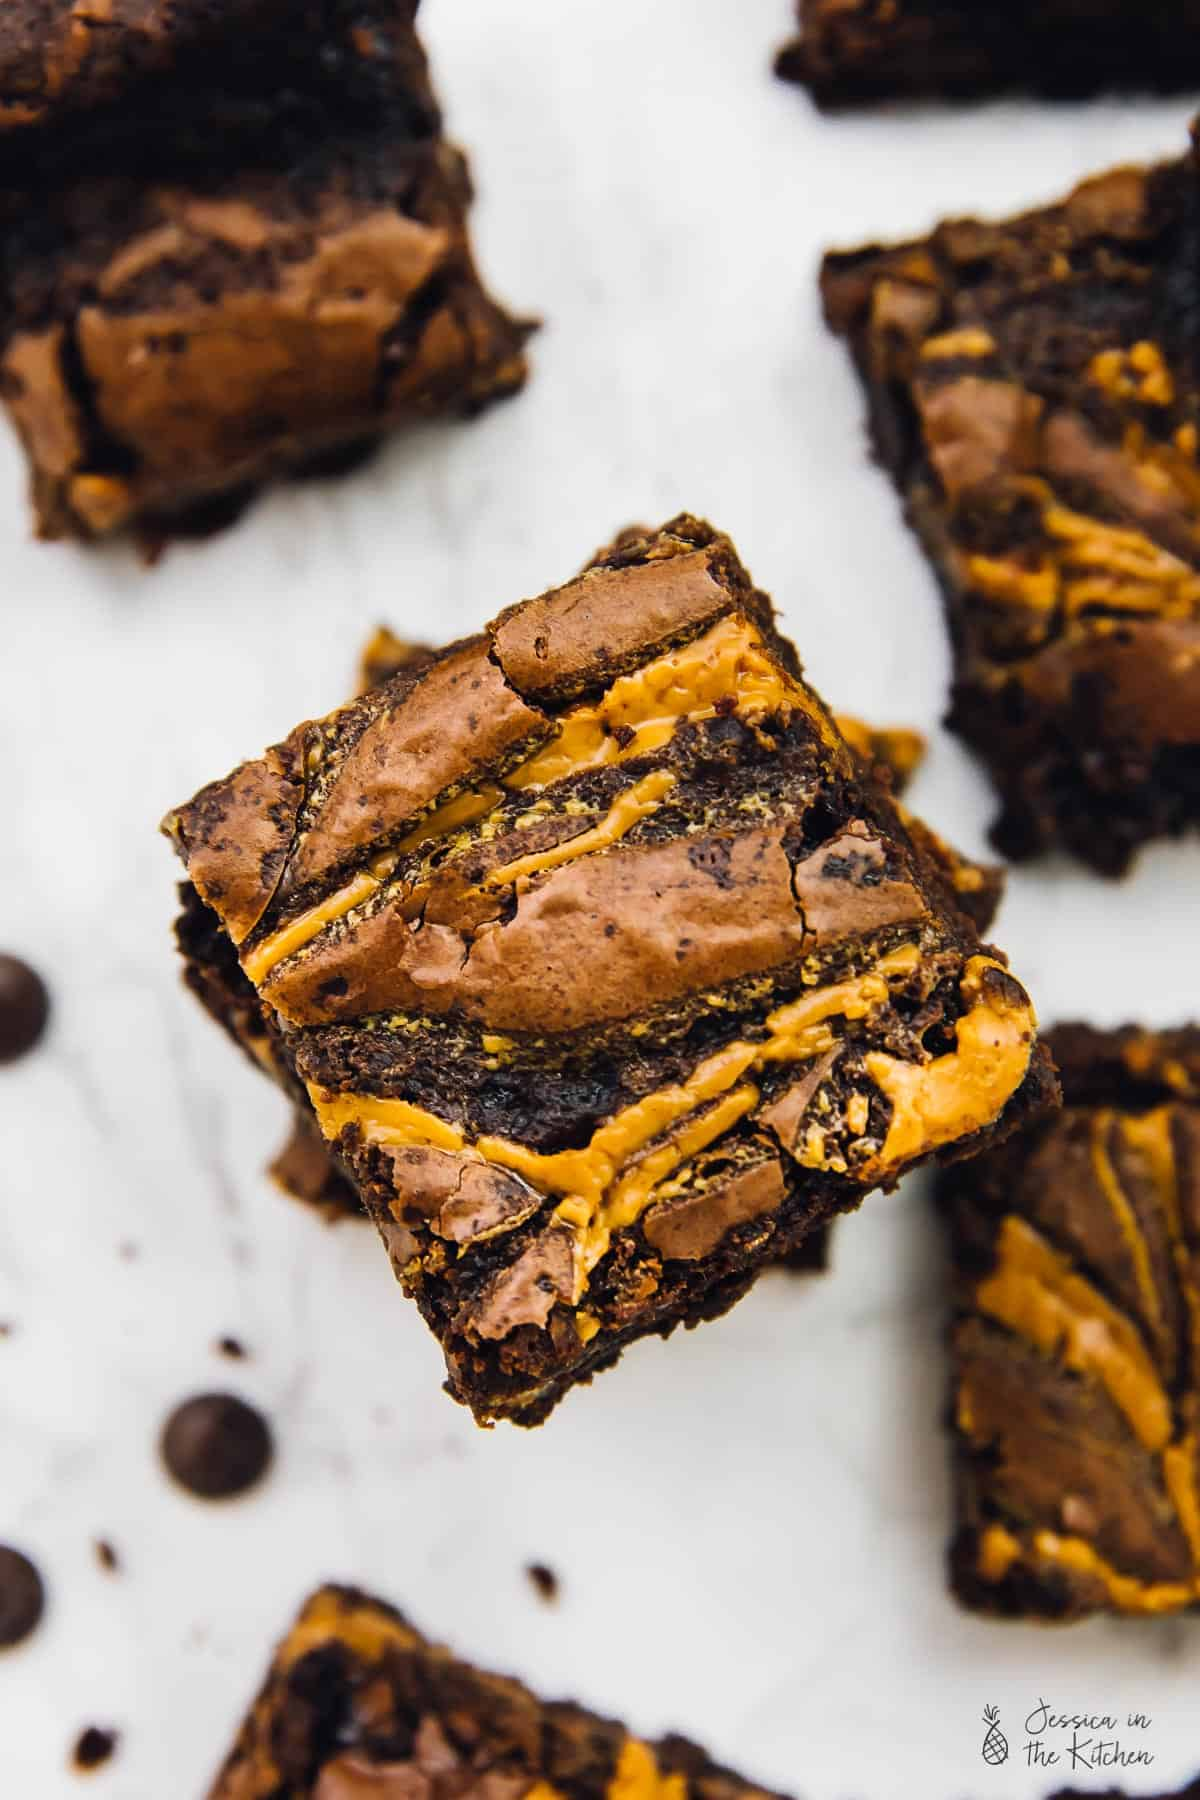 These Vegan Chocolate Peanut Butter Swirl Brownies are beyond addictive! They are chewy, fudgy, rich inchocolate and peanut butter and so easy to make! via https://jessicainthekitchen.com